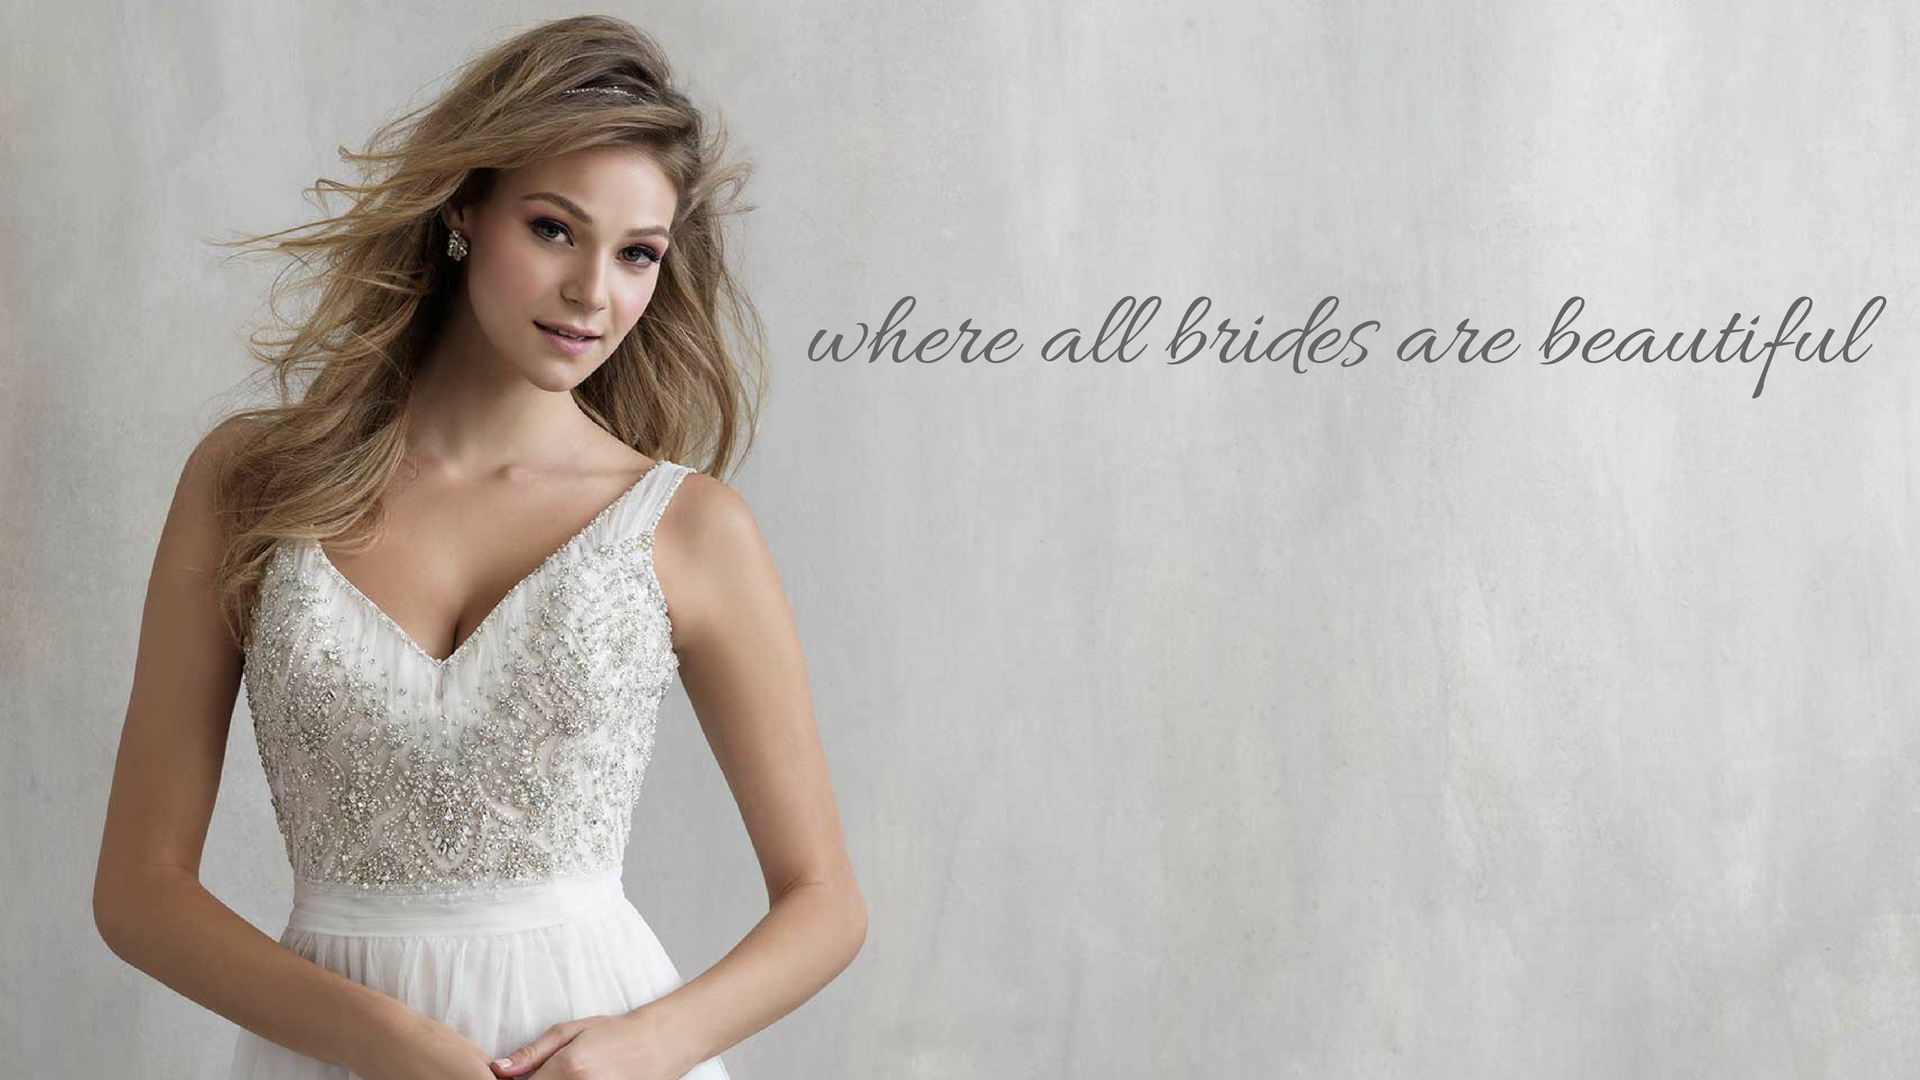 where-all-brides-are-beautiful-3